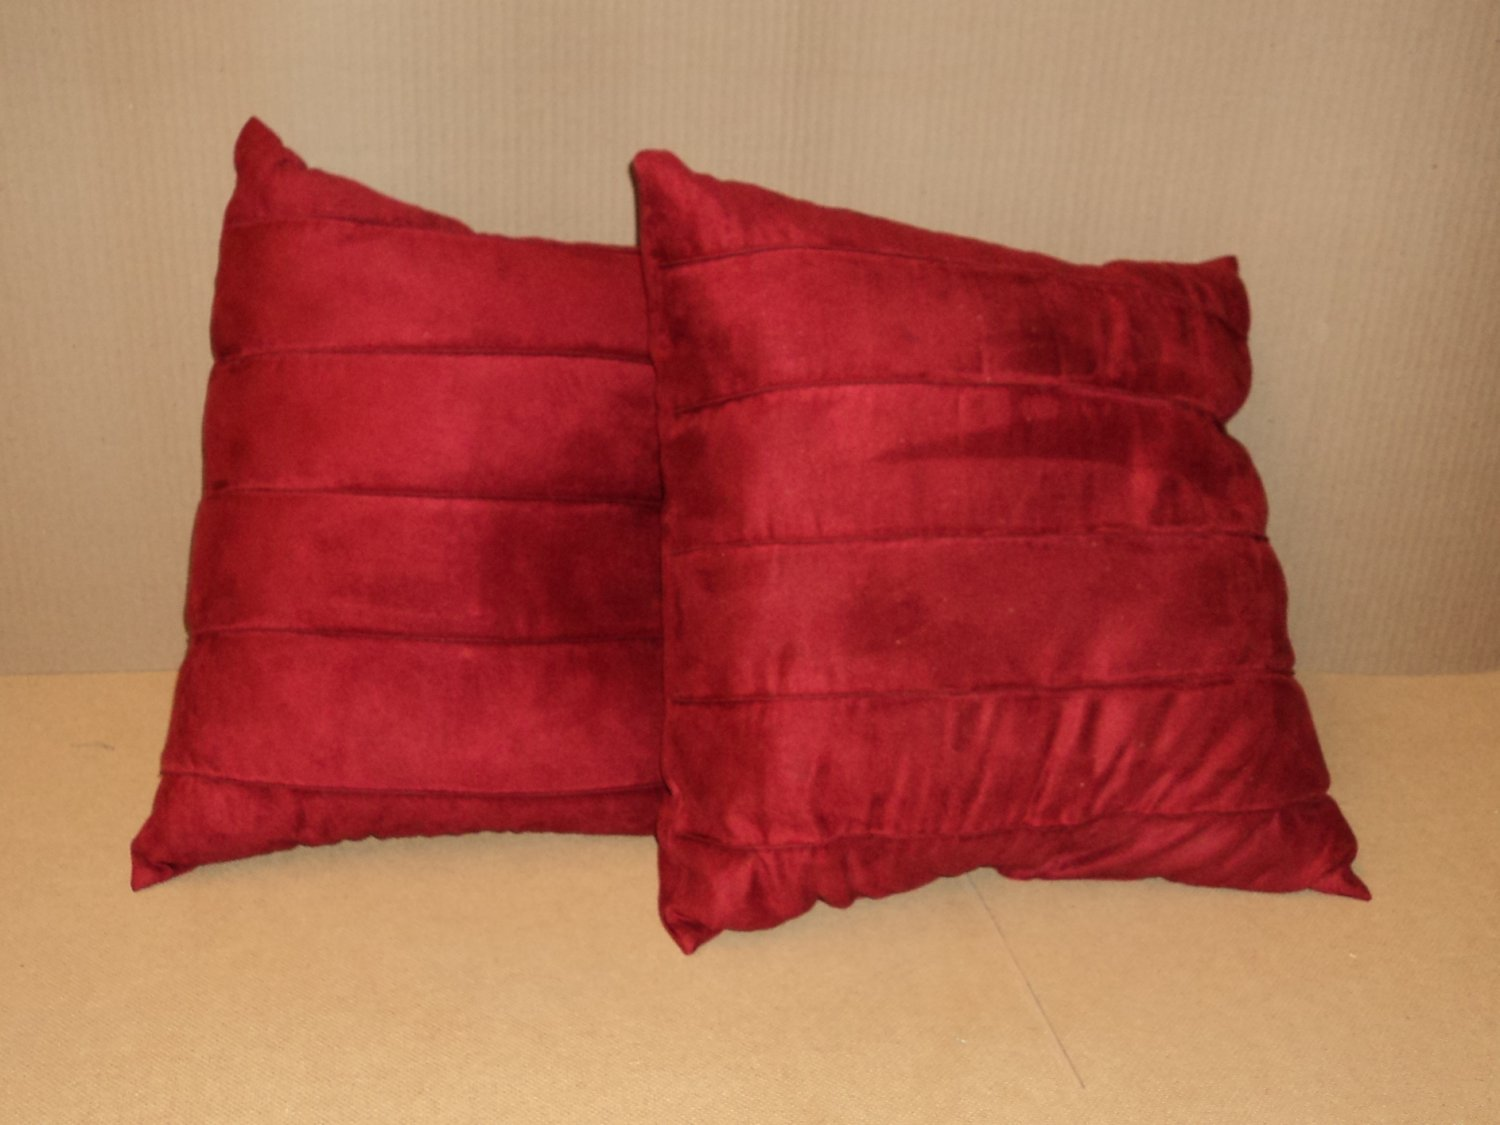 Designer Pillows 17in L x 17in W x 7in D Red Solid Set of 2 Ultrasuede